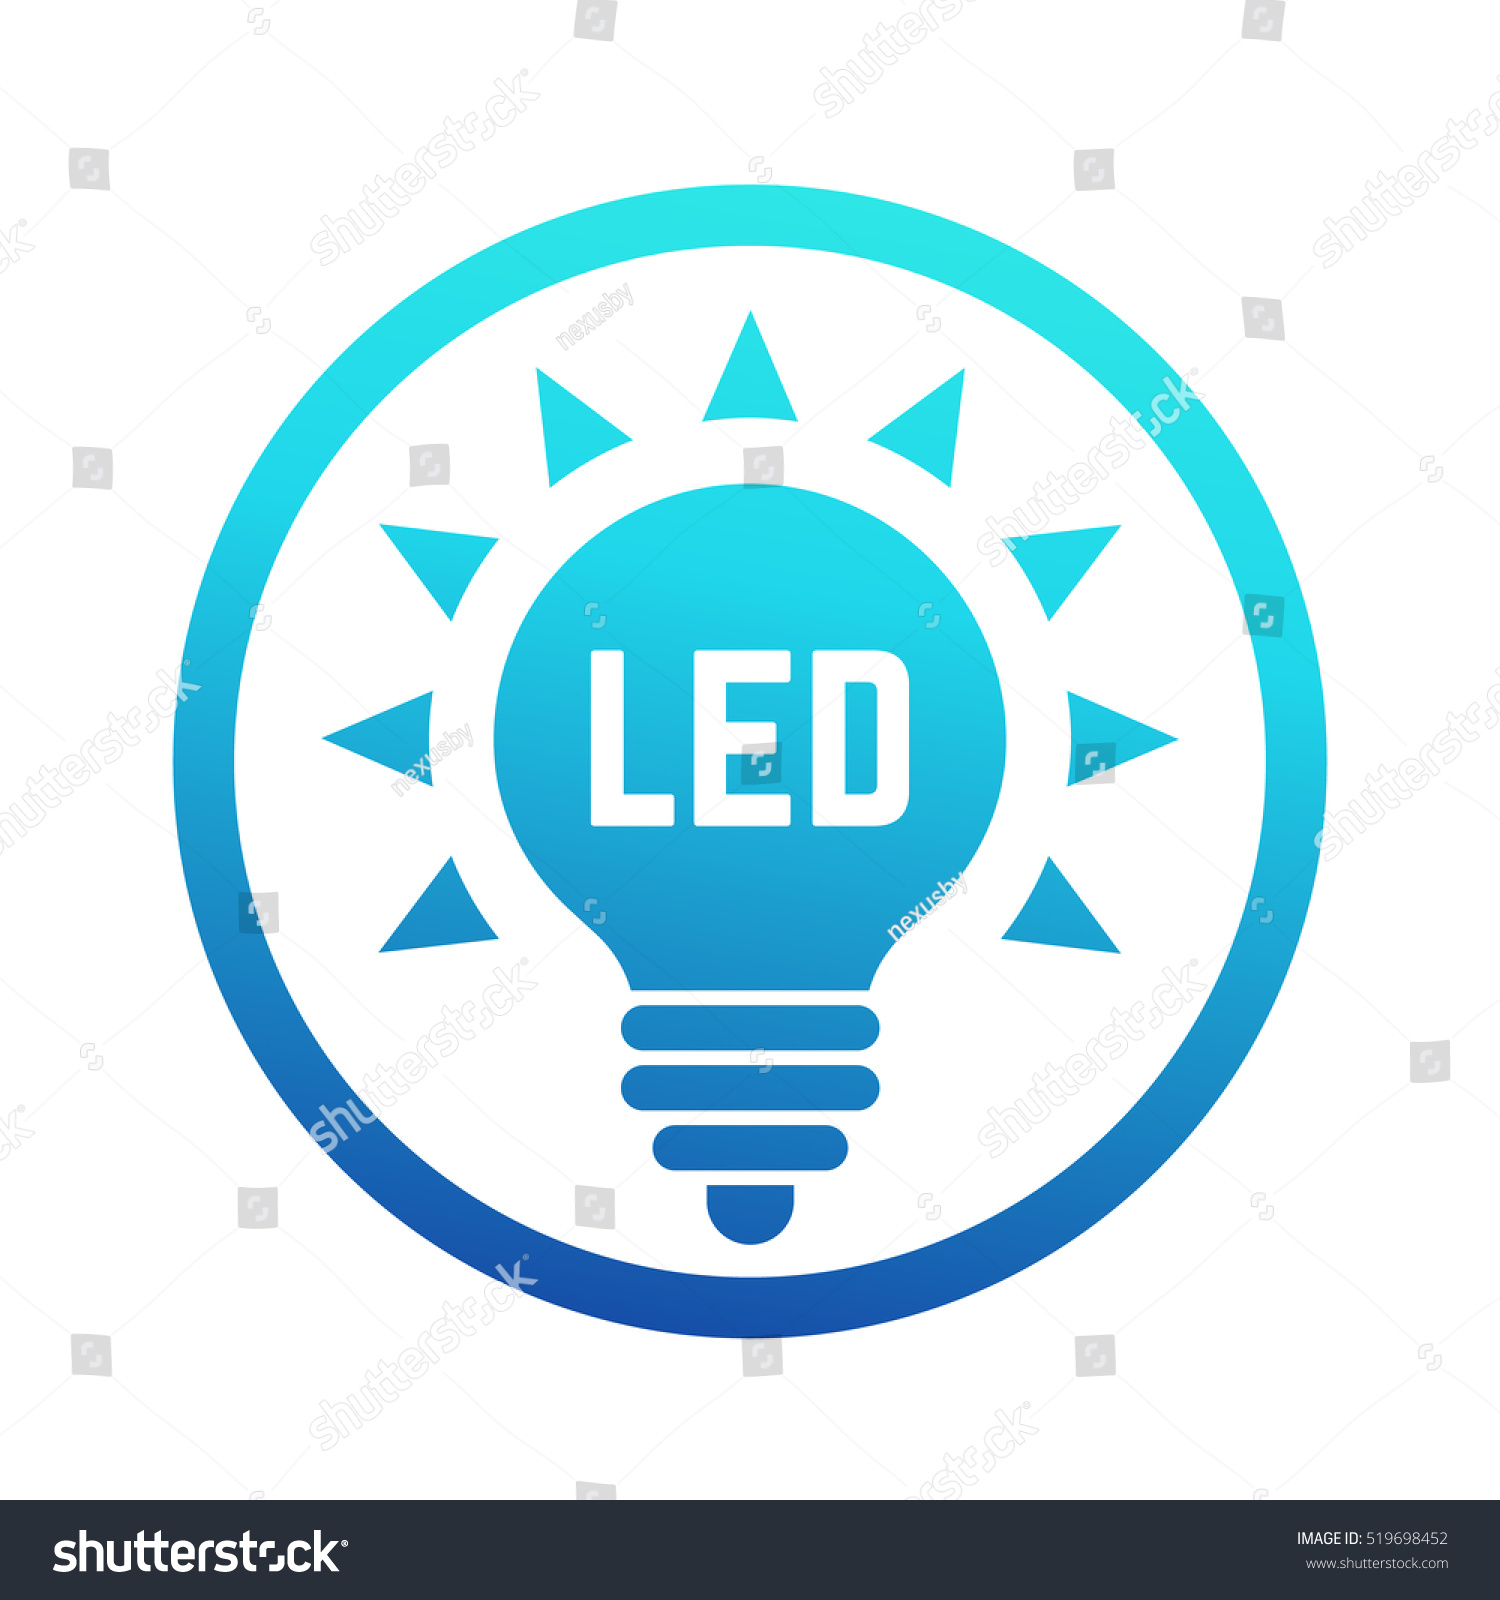 Led light bulb icon blue gradient stock vector 519698452 led light bulb icon with blue gradient biocorpaavc Images